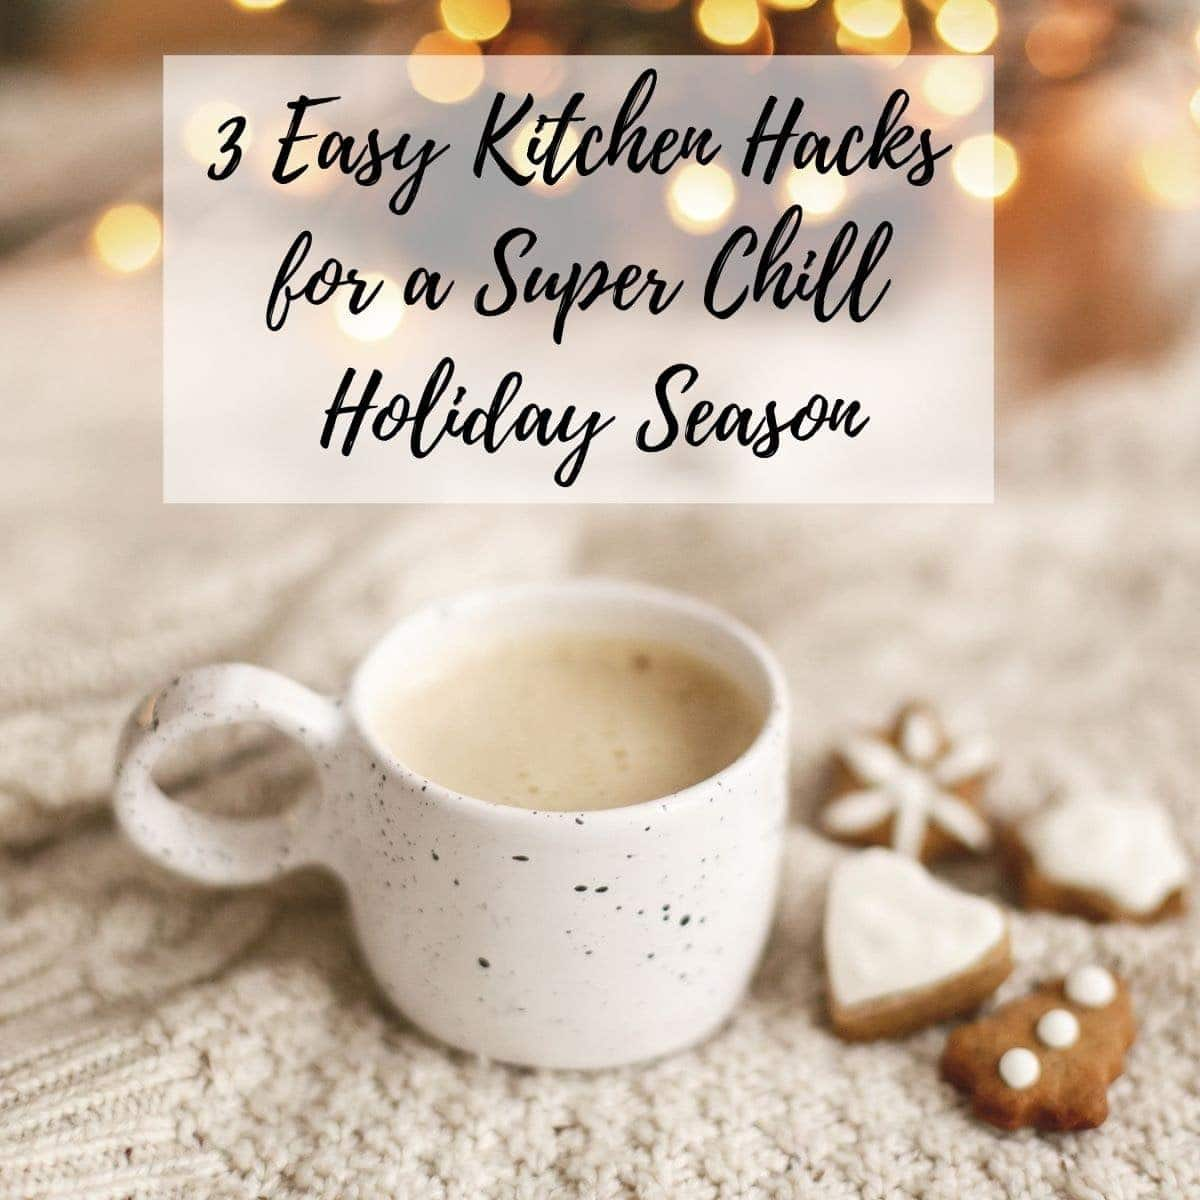 Kitchen hacks for the holidays with a mug of tea and gingerbread cookies.